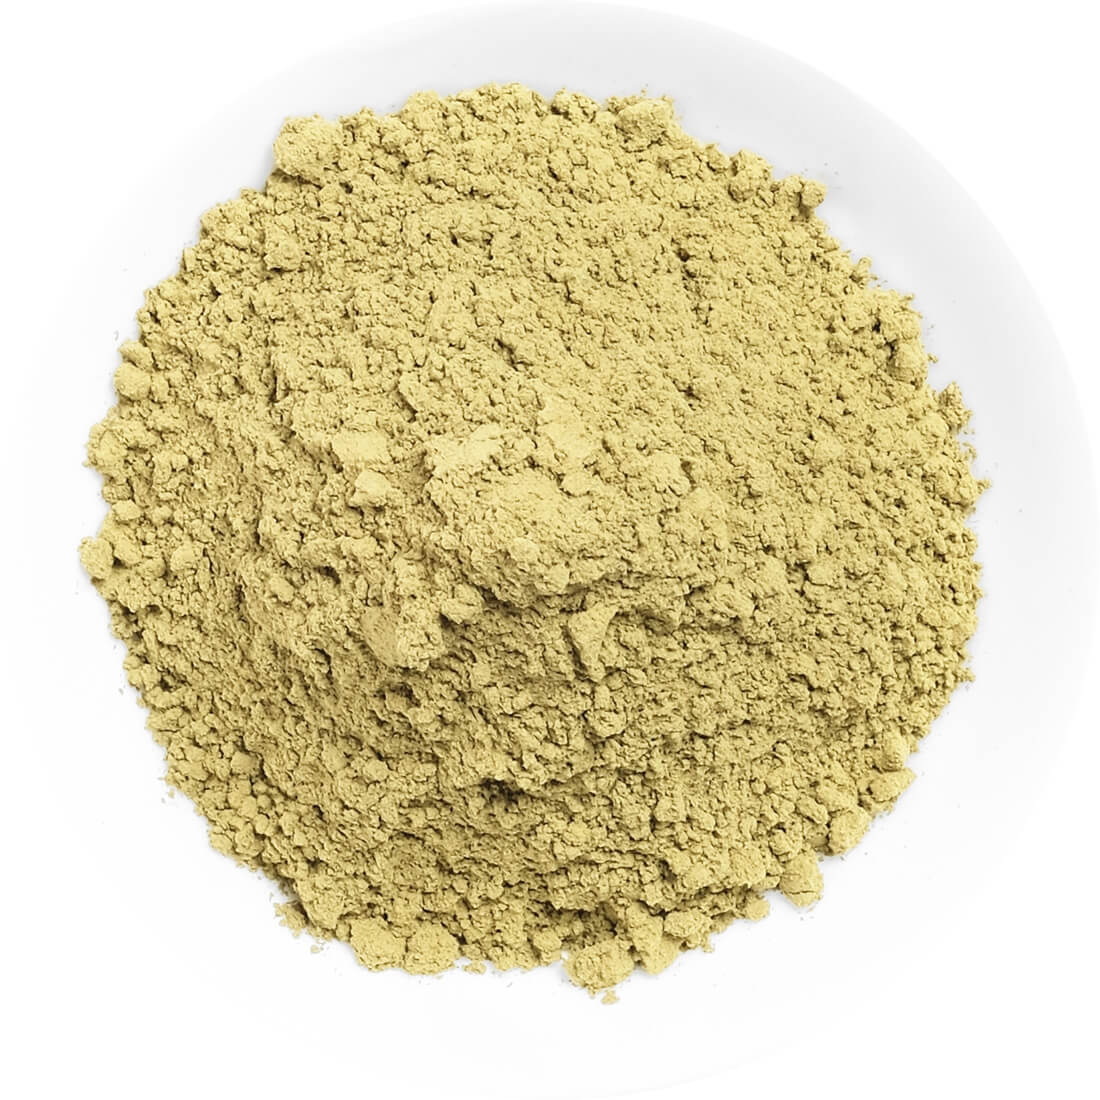 Icariin Powder / Horny Goat Weed Powder